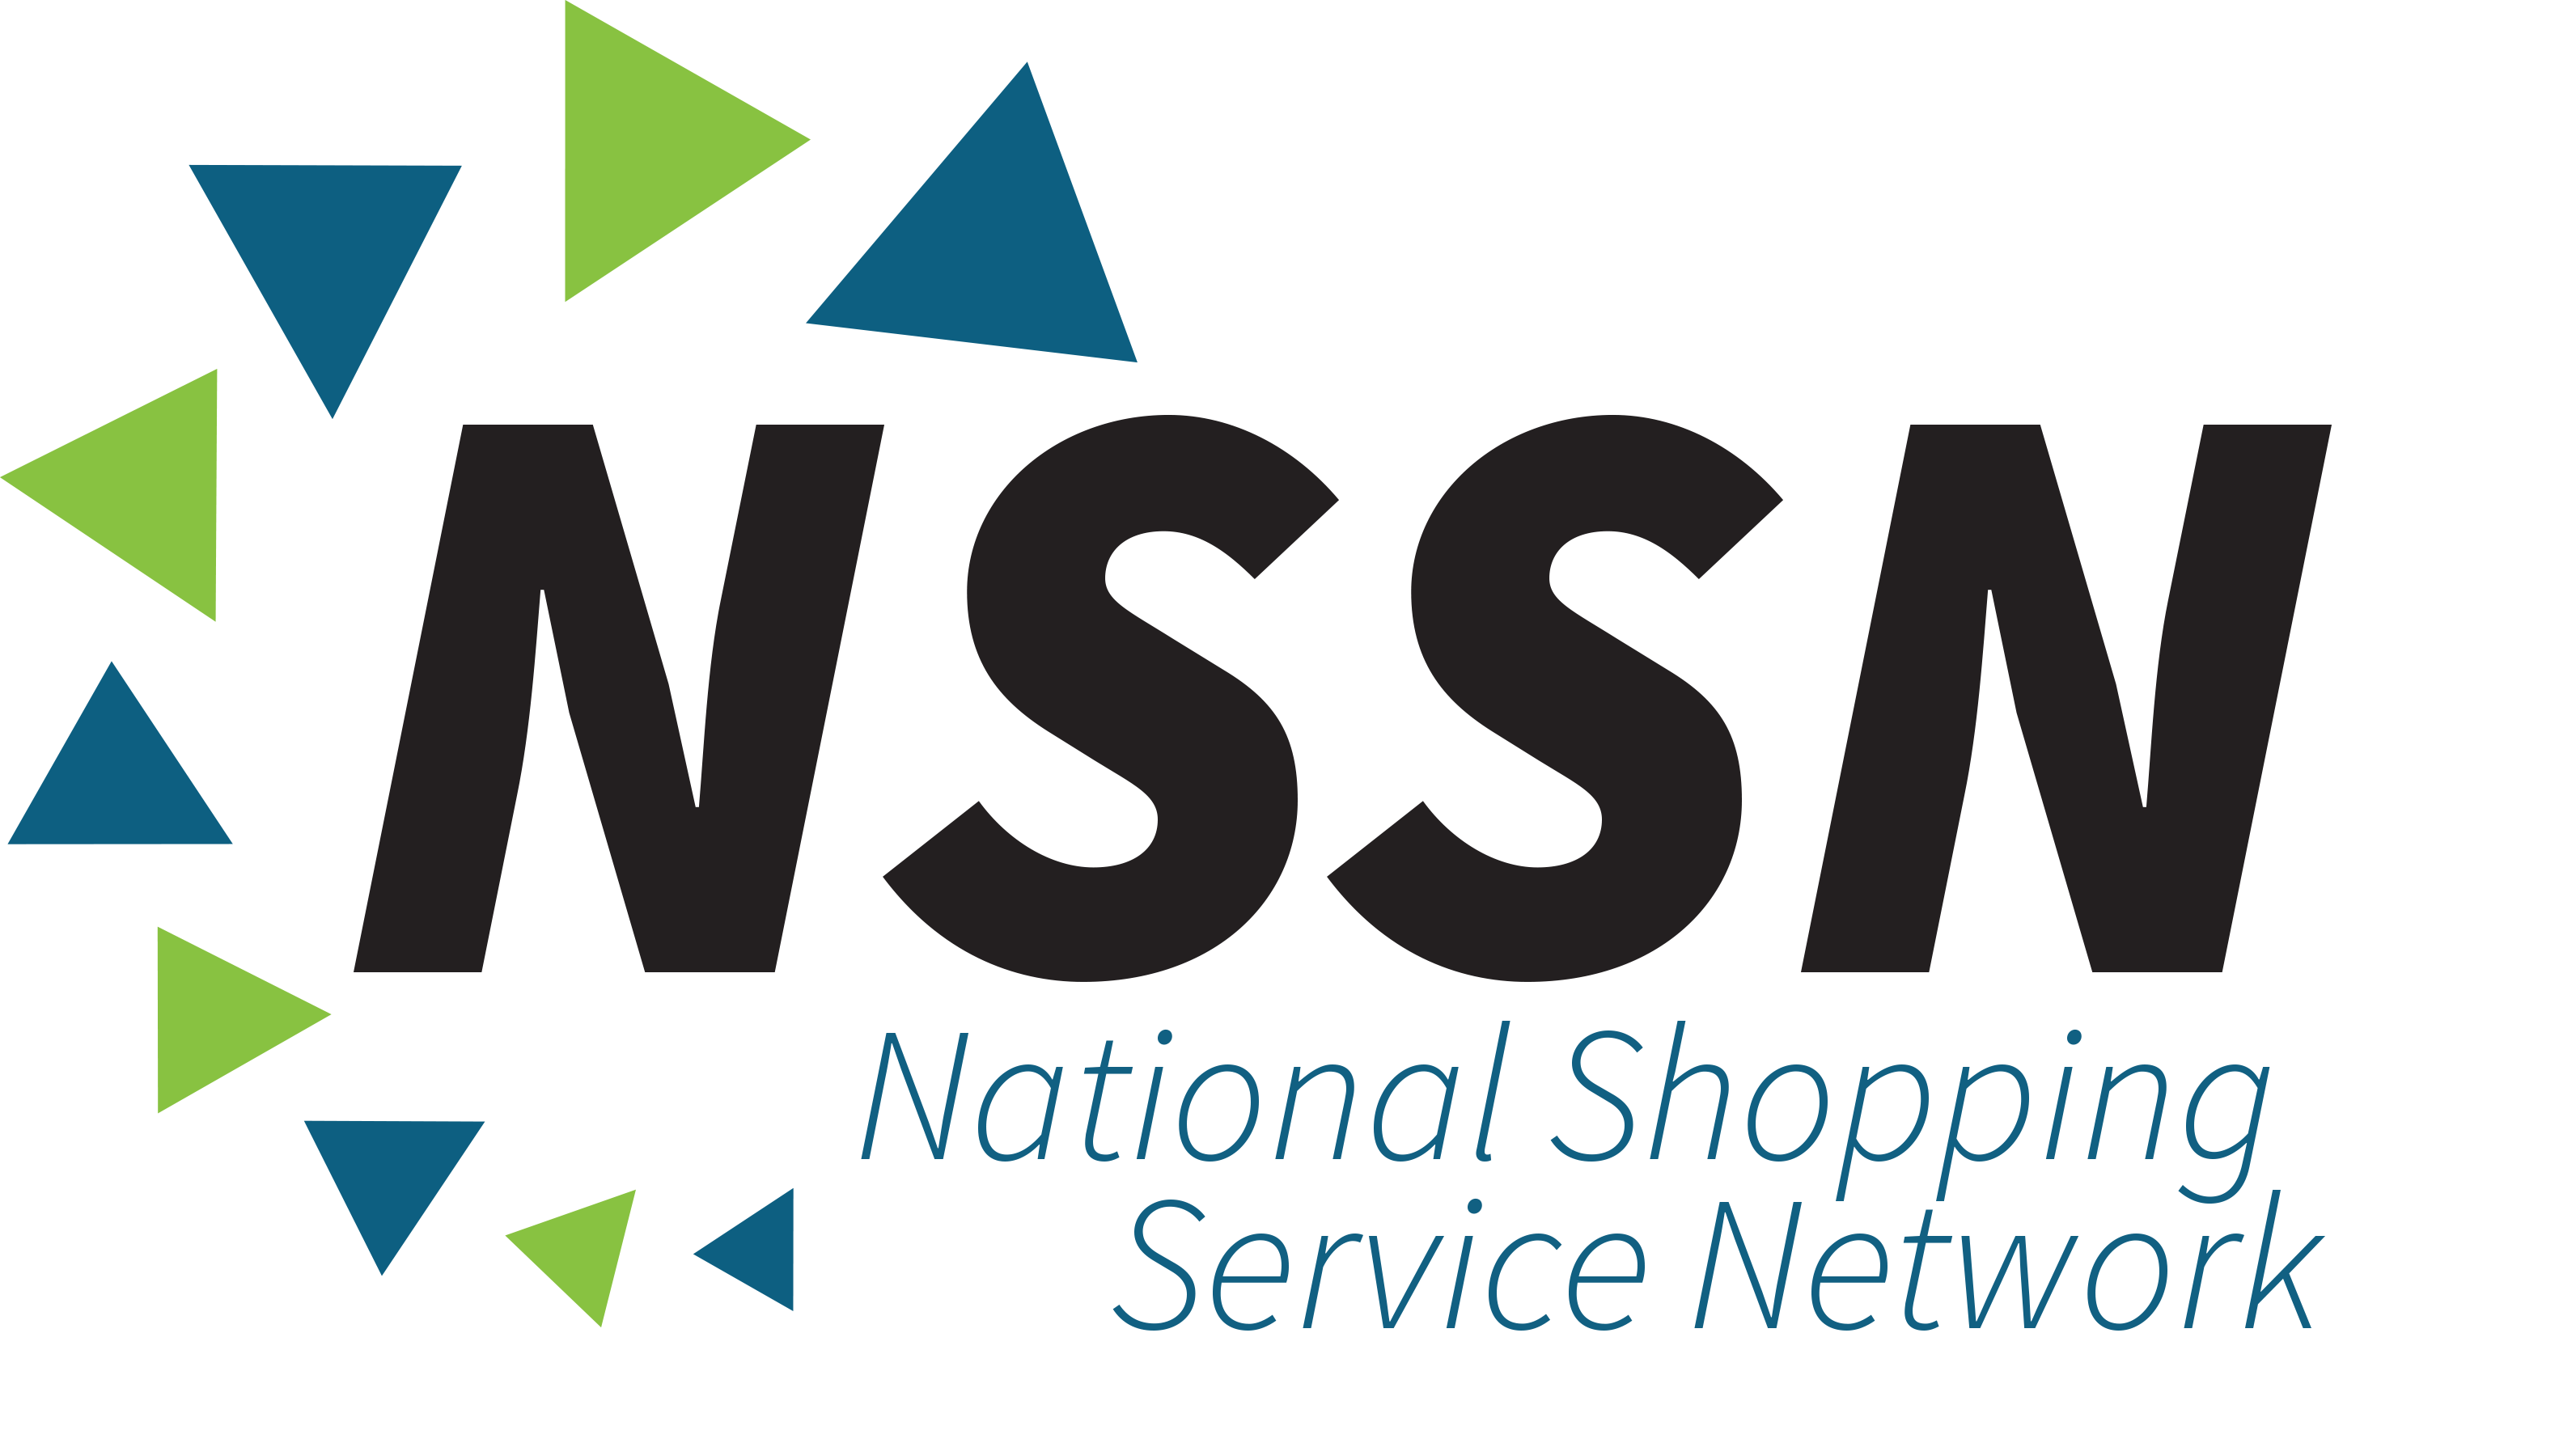 National Shopping Service Network